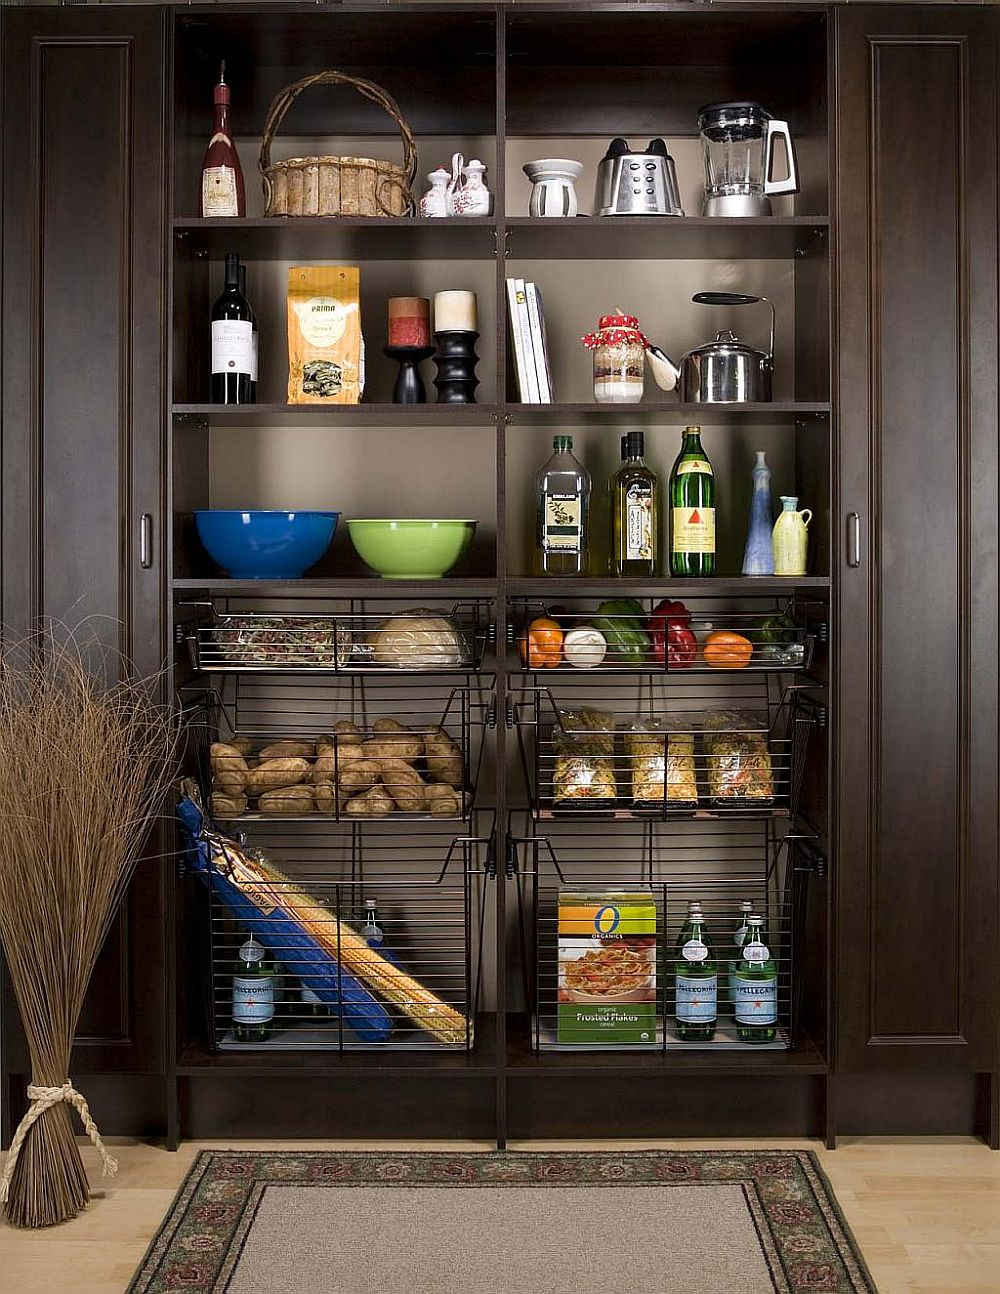 Wiry-baskets-bring-additional-storage-space-to-the-open-pantry